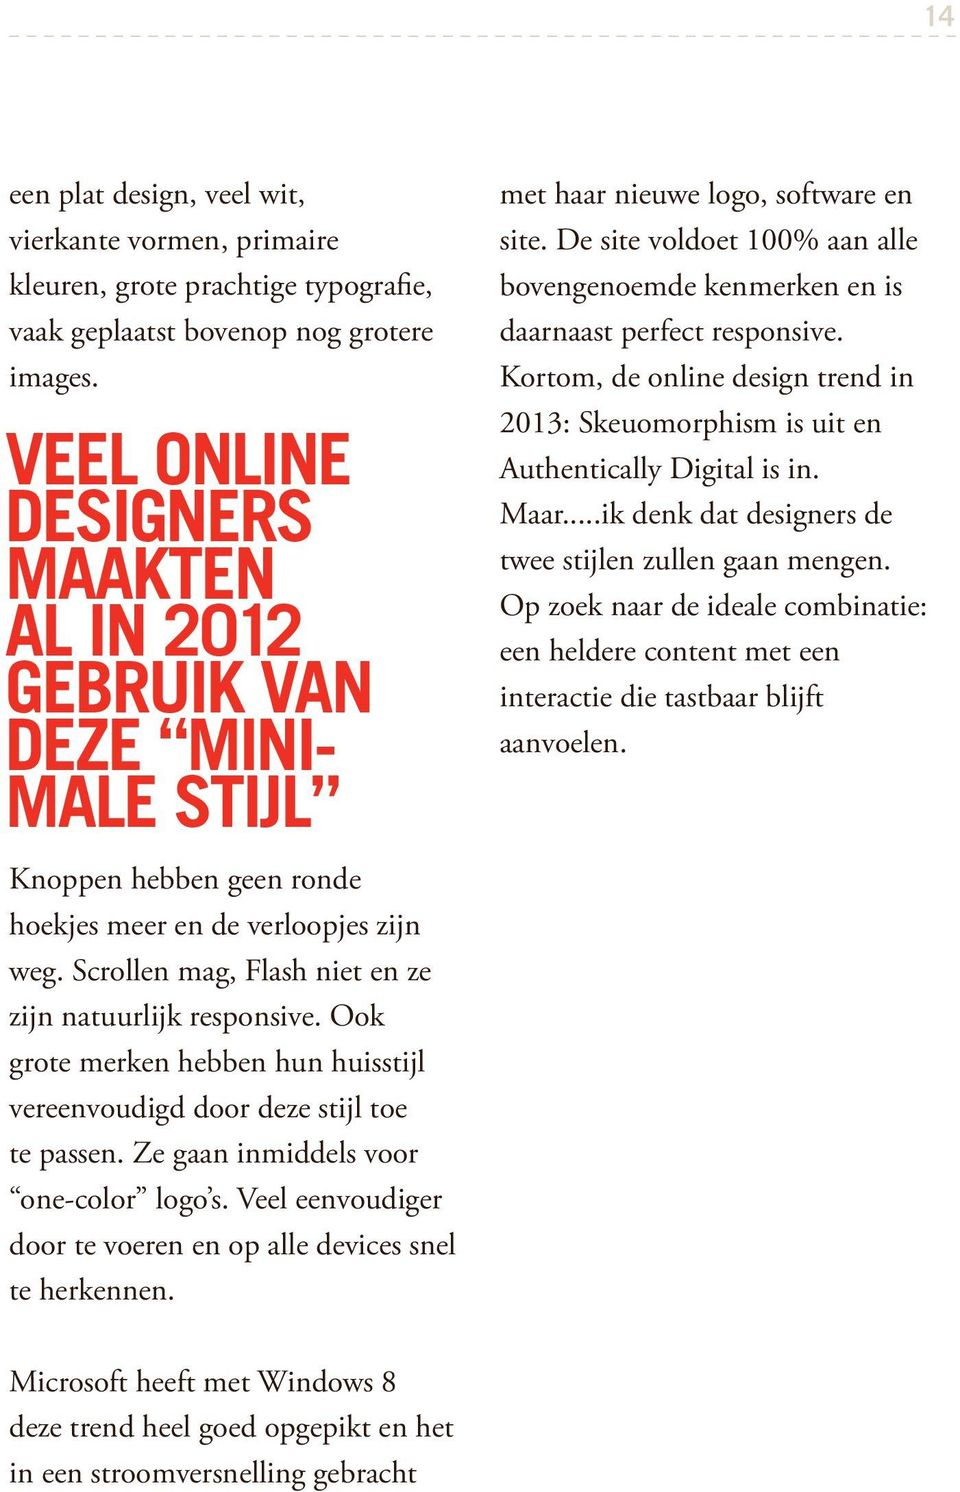 De site voldoet 100% aan alle bovengenoemde kenmerken en is daarnaast perfect responsive. Kortom, de online design trend in 2013: Skeuomorphism is uit en Authentically Digital is in. Maar.